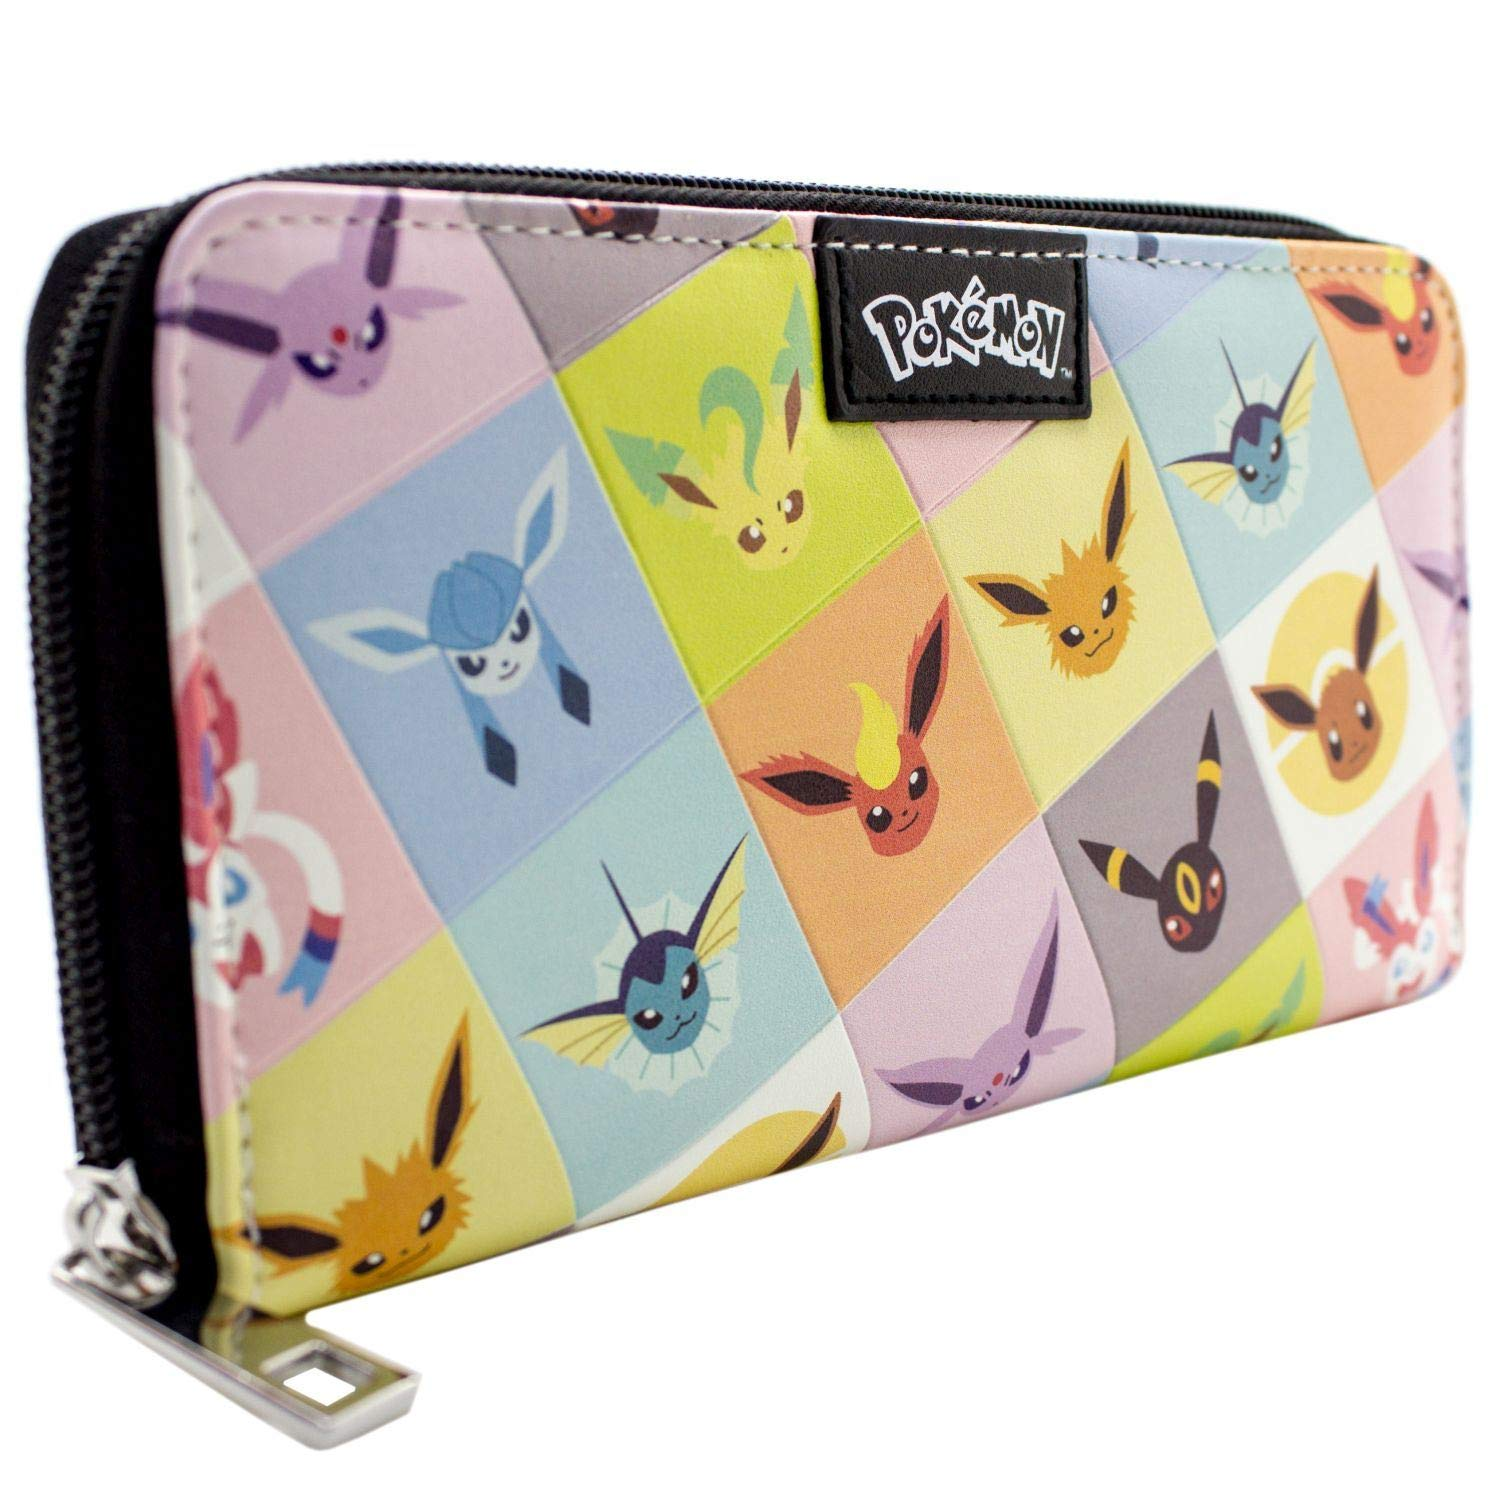 Cartera de Pokemon Eevee evolución Umbreon Jolteon Negro: Amazon.es: Equipaje